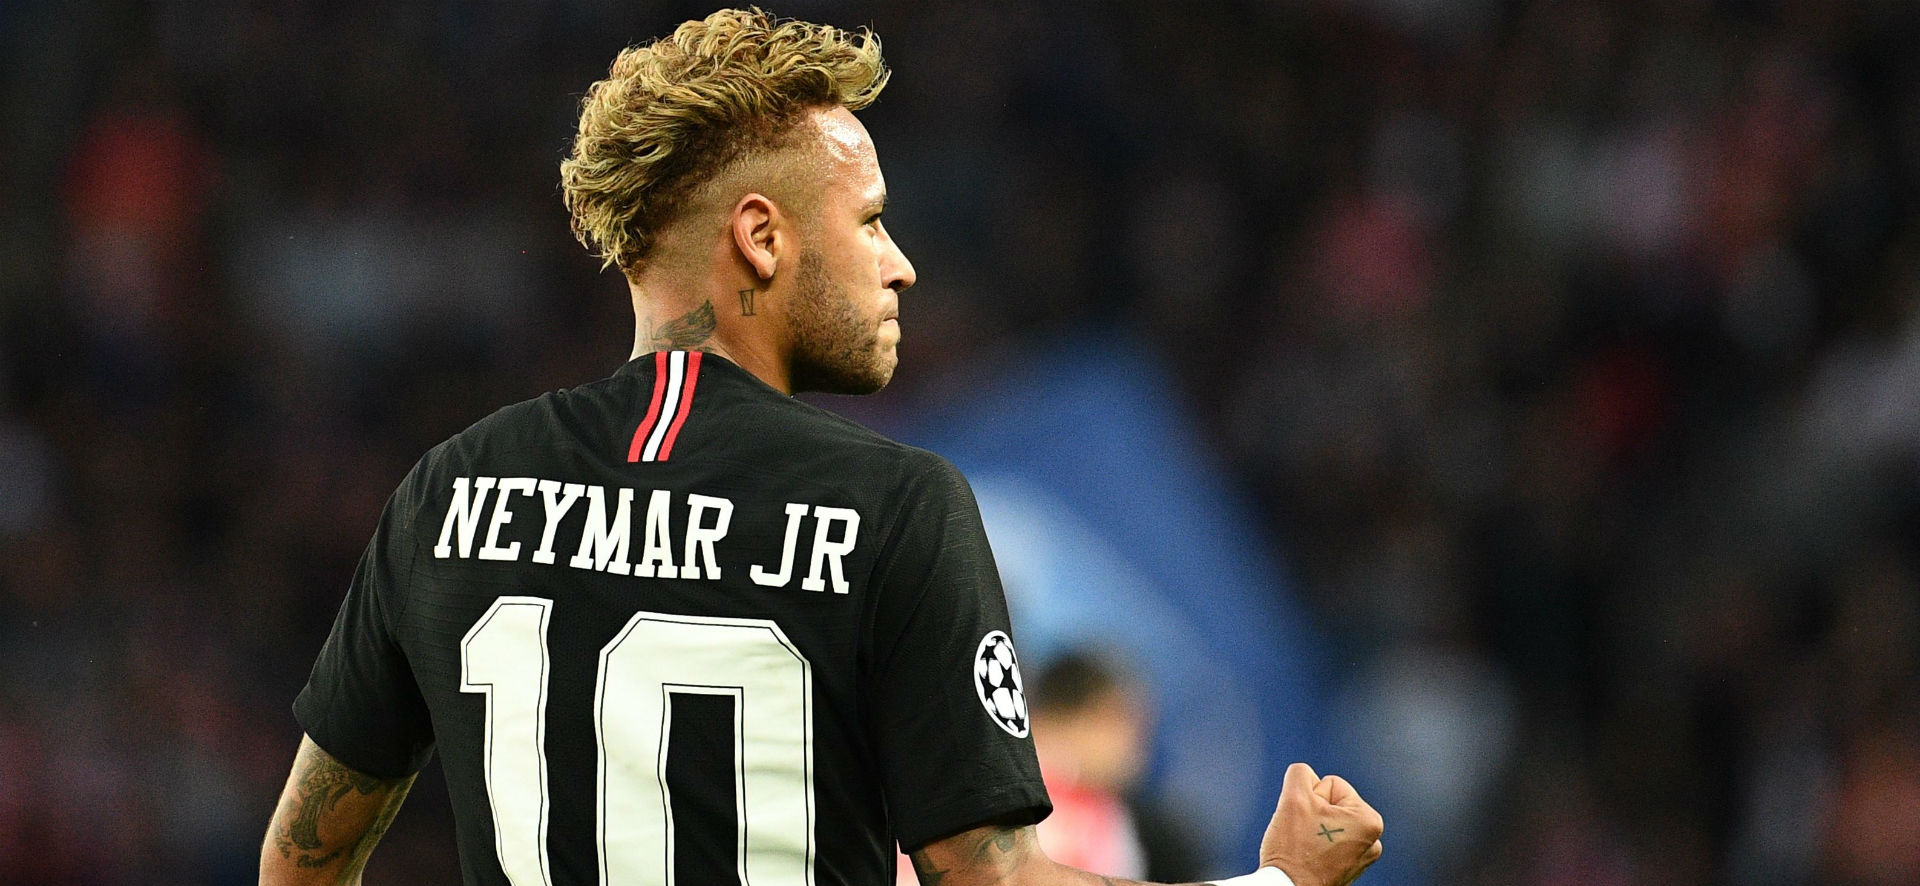 Neymar will remain at PSG, says Neymar's father